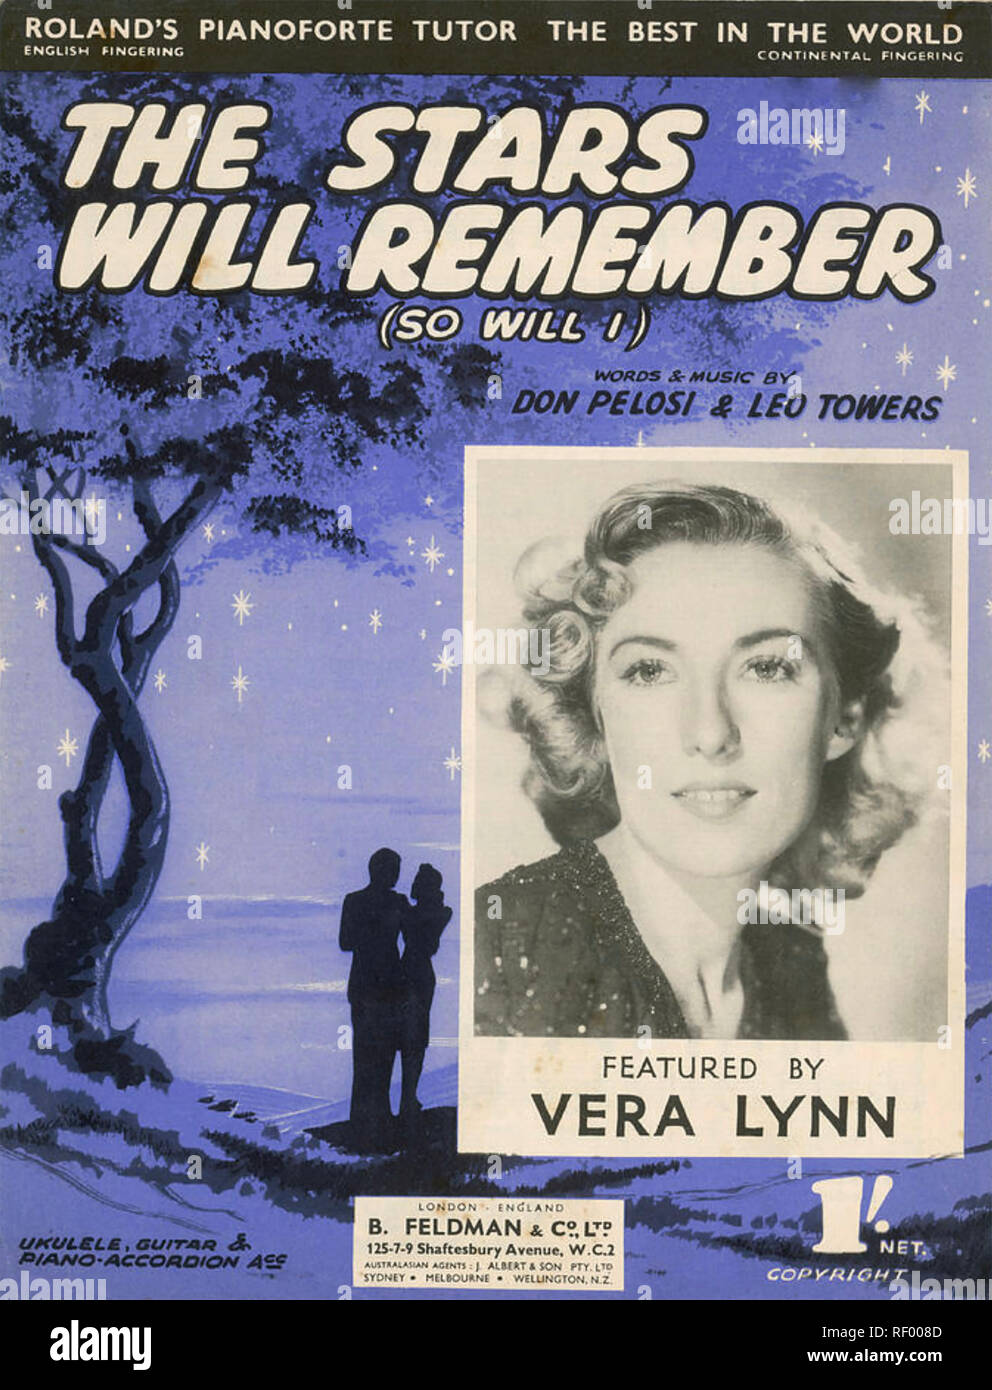 VERA LYNN English popular music singer on the sheet music cover of her 1946 recording of The Stars Will Remember - Stock Image